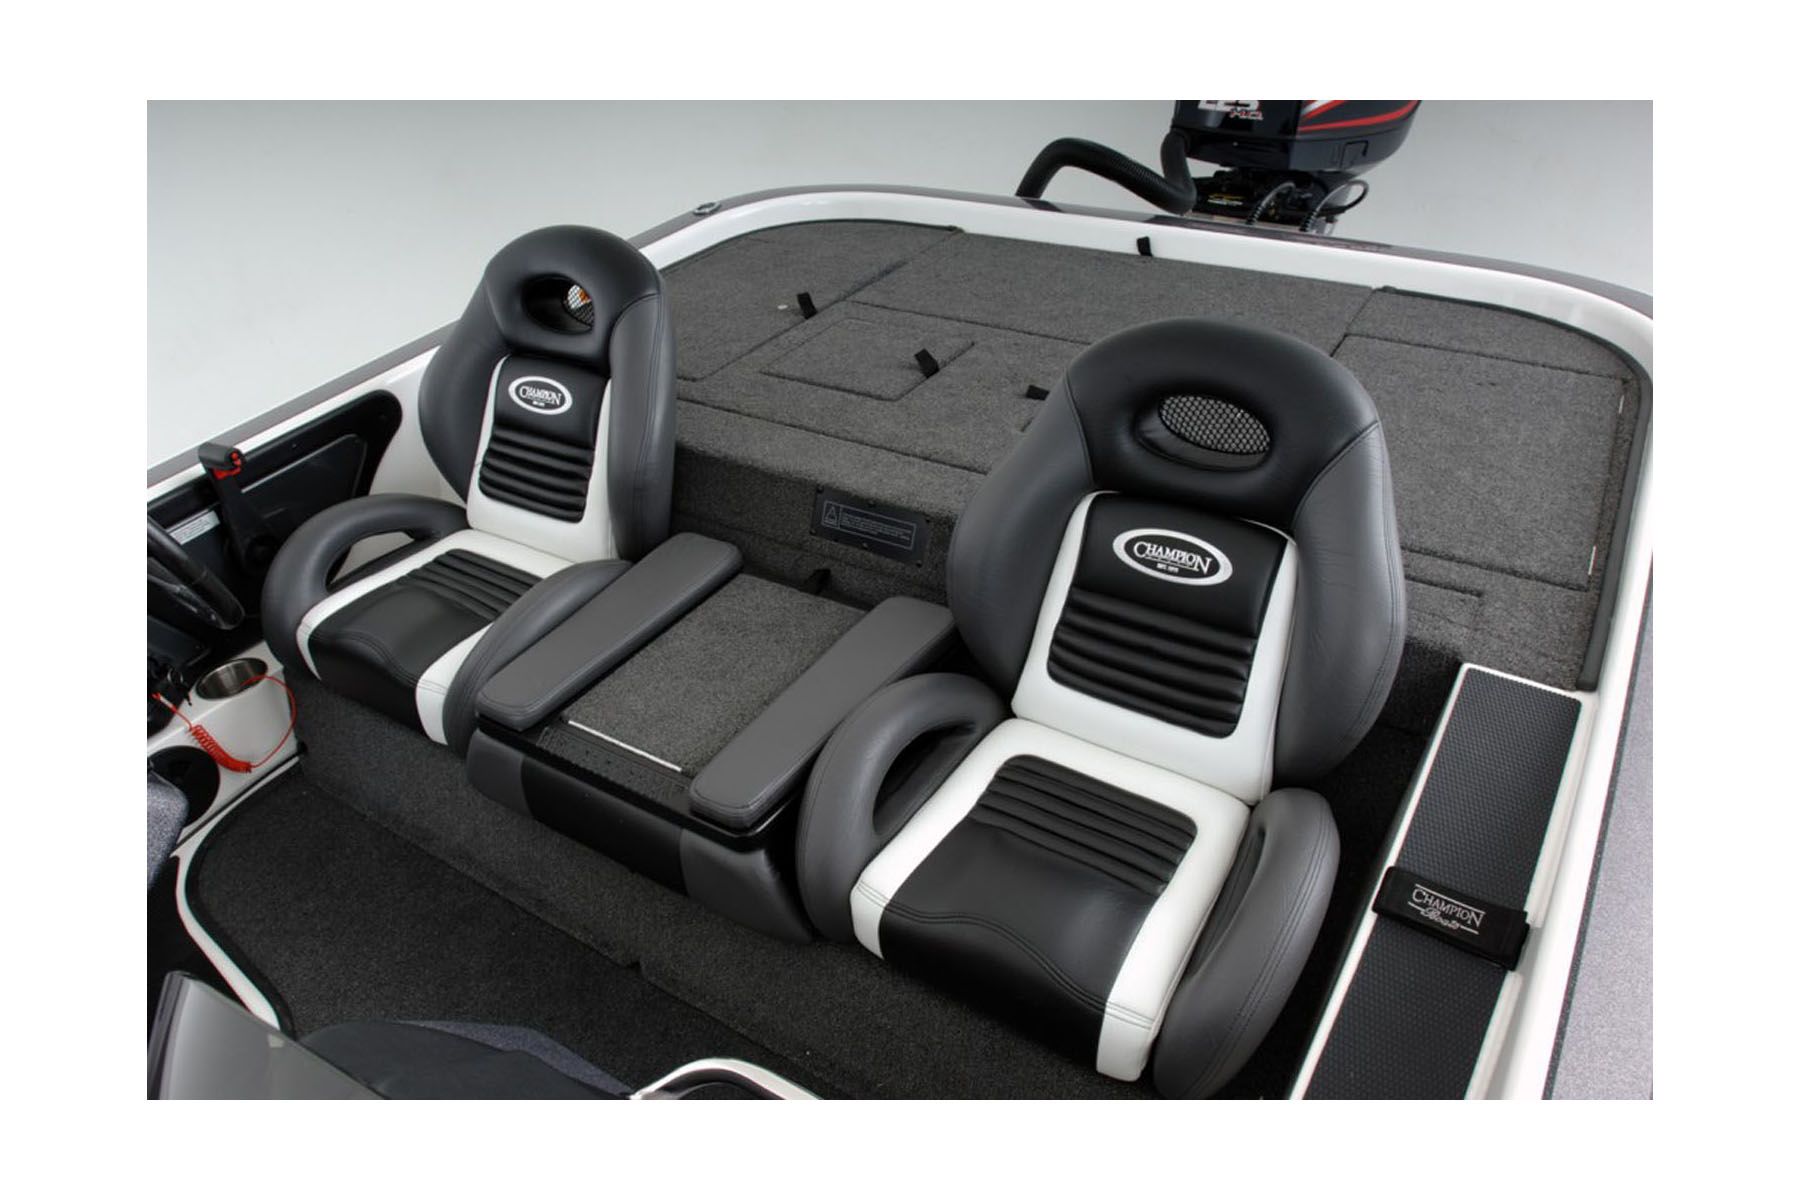 replacement captains chairs for boats drop leaf table with chair storage llebroc gt2 bass boat seats center console box